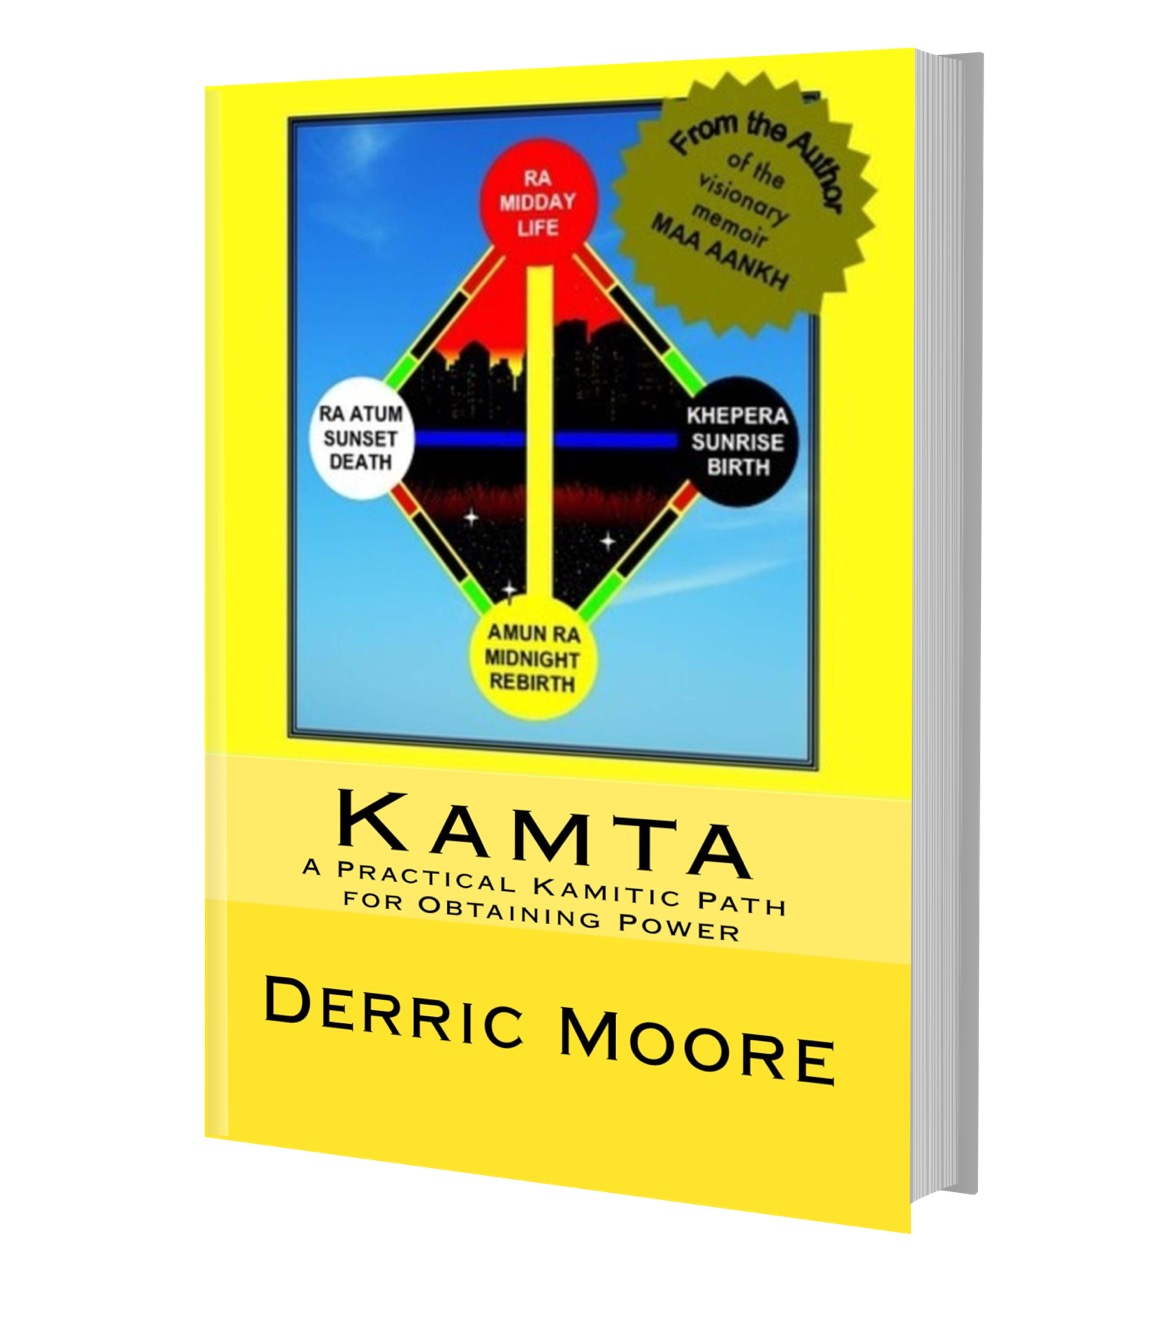 KAMTA: A Practical Kamitic Path for Obtaining Power